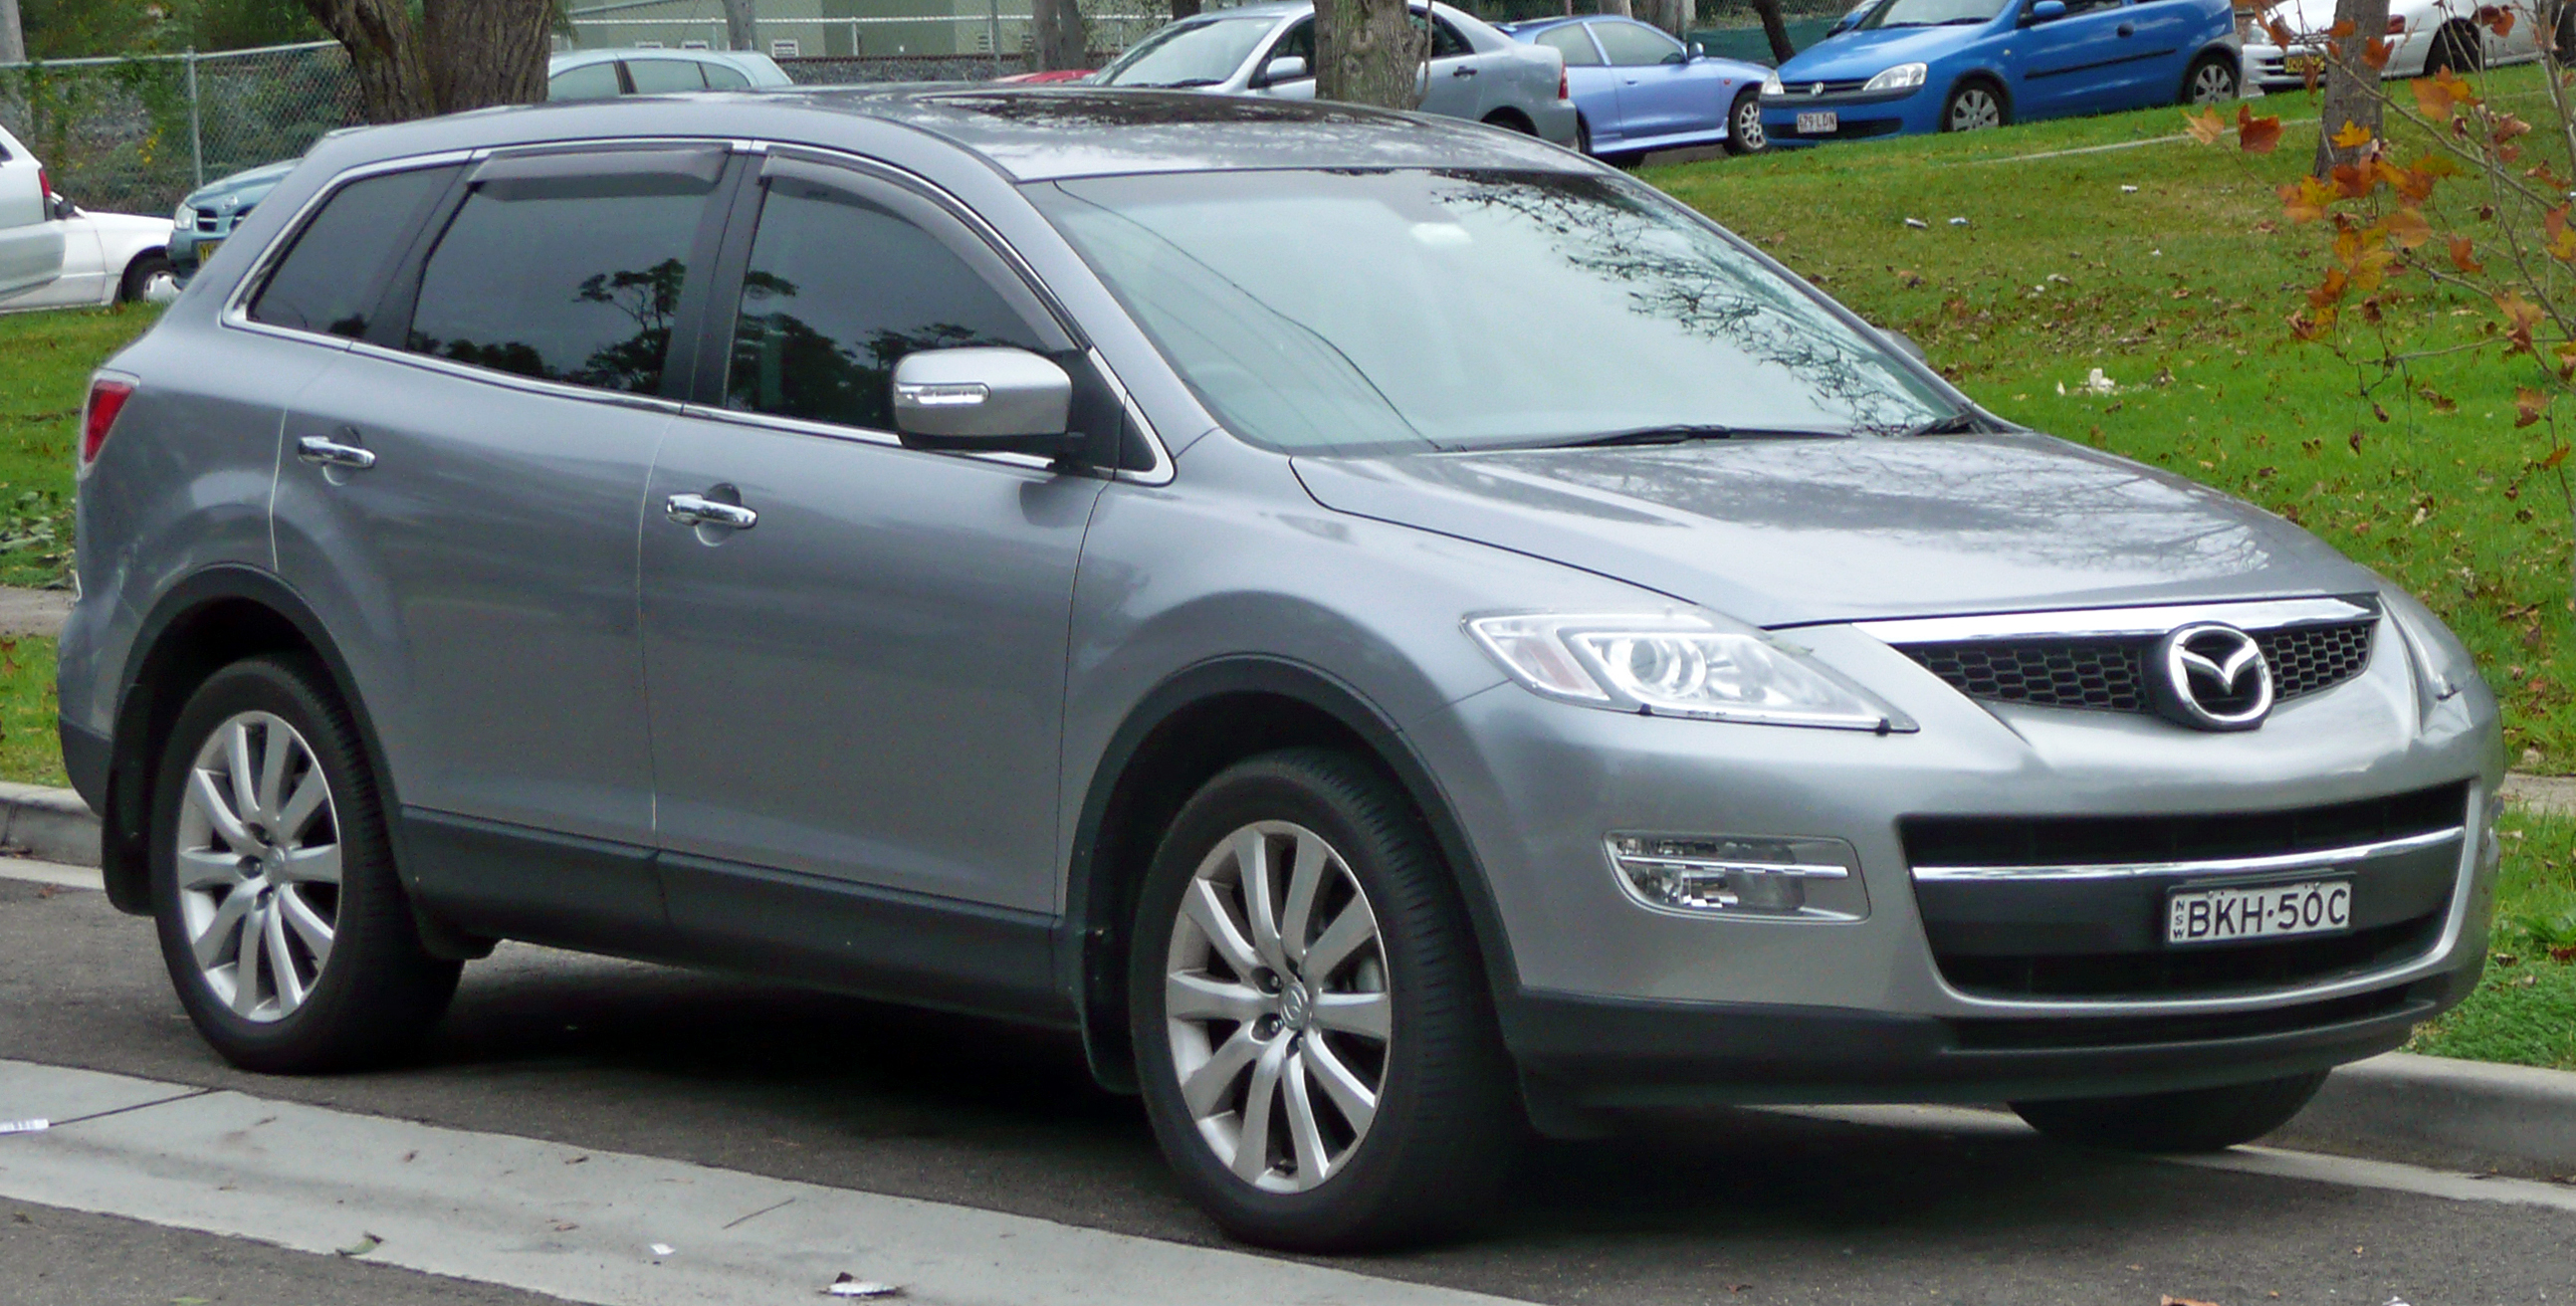 mazda cx 9 2007 images galleries with a bite. Black Bedroom Furniture Sets. Home Design Ideas